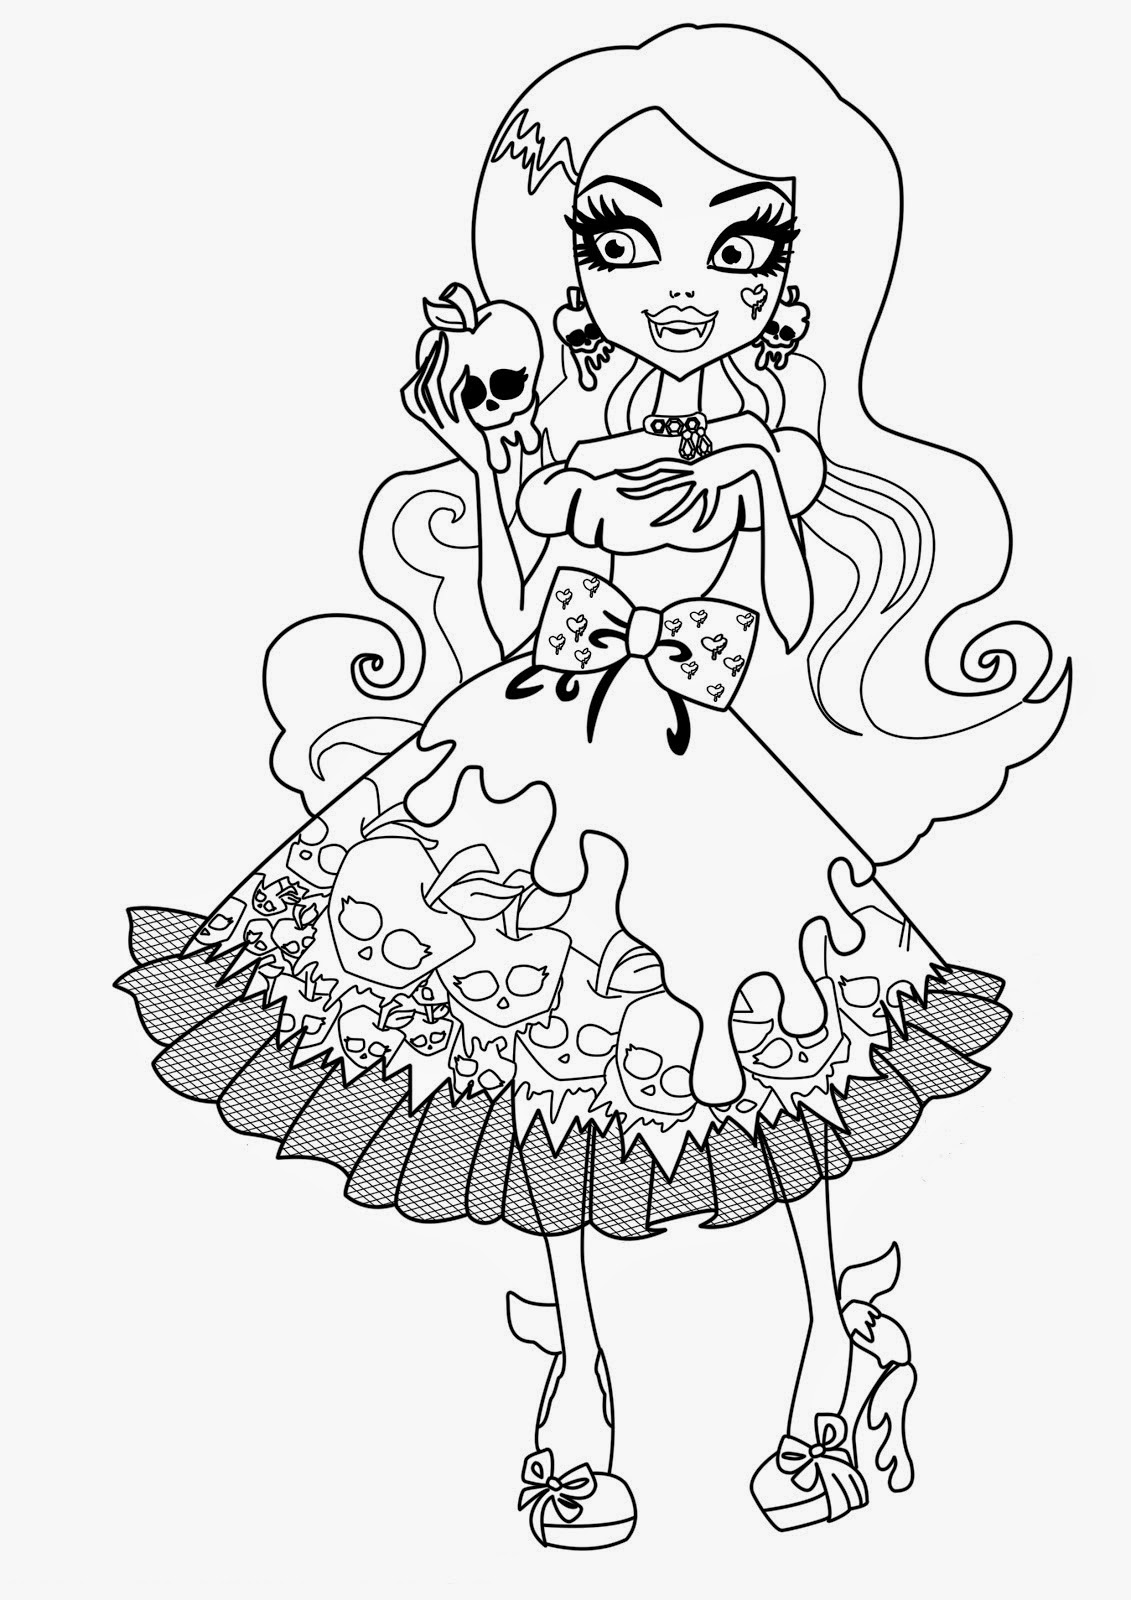 monster high coloring picture free monster high coloring pages to print for kids coloring picture monster high